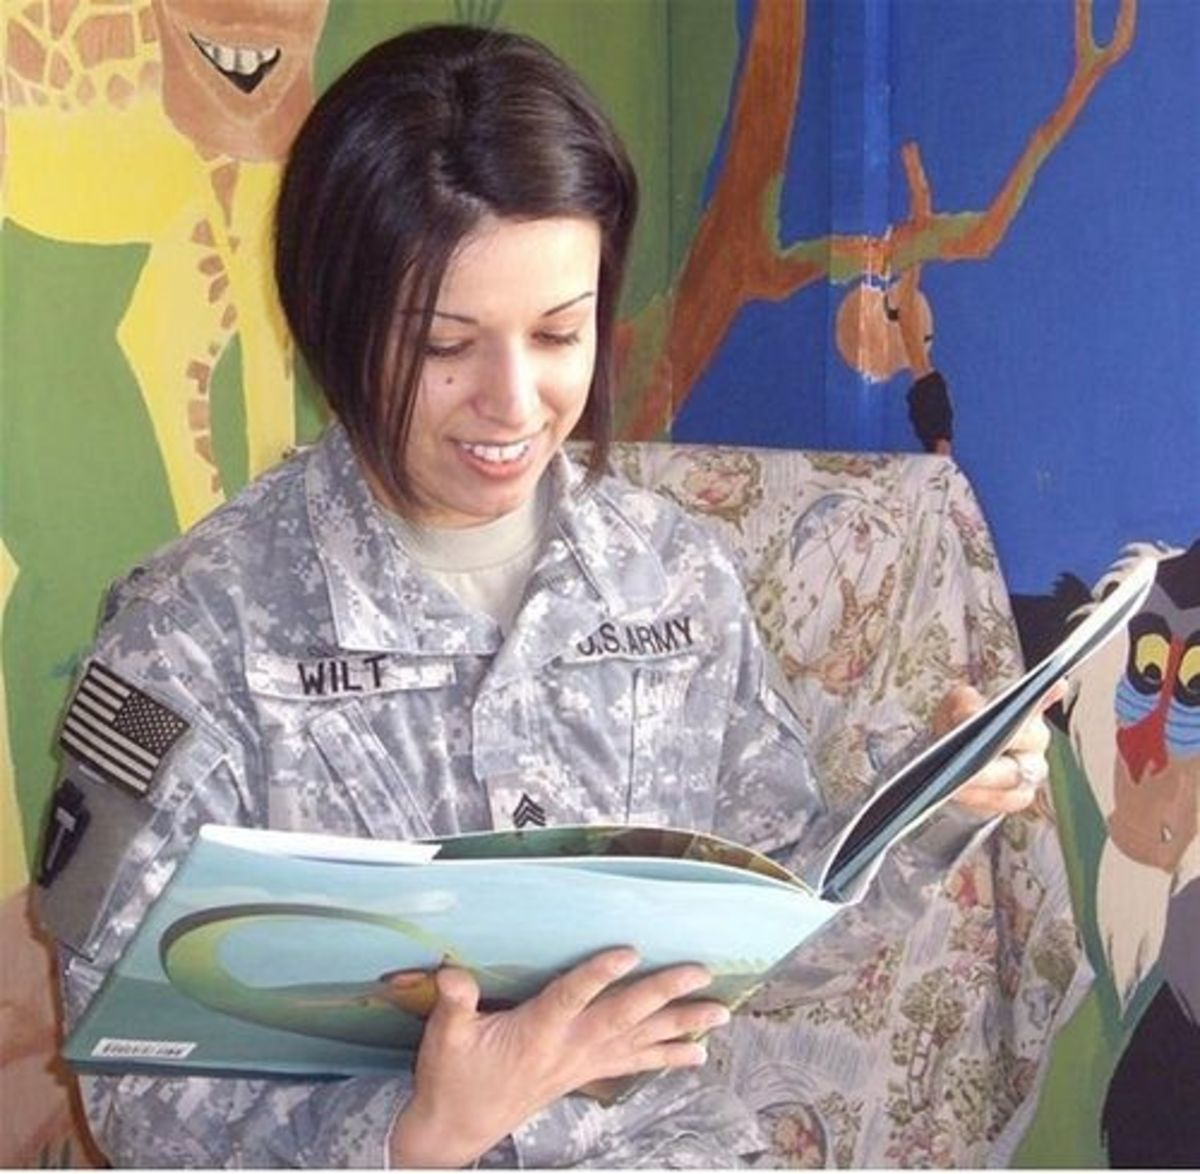 A Happy Reader by The U.S. Army